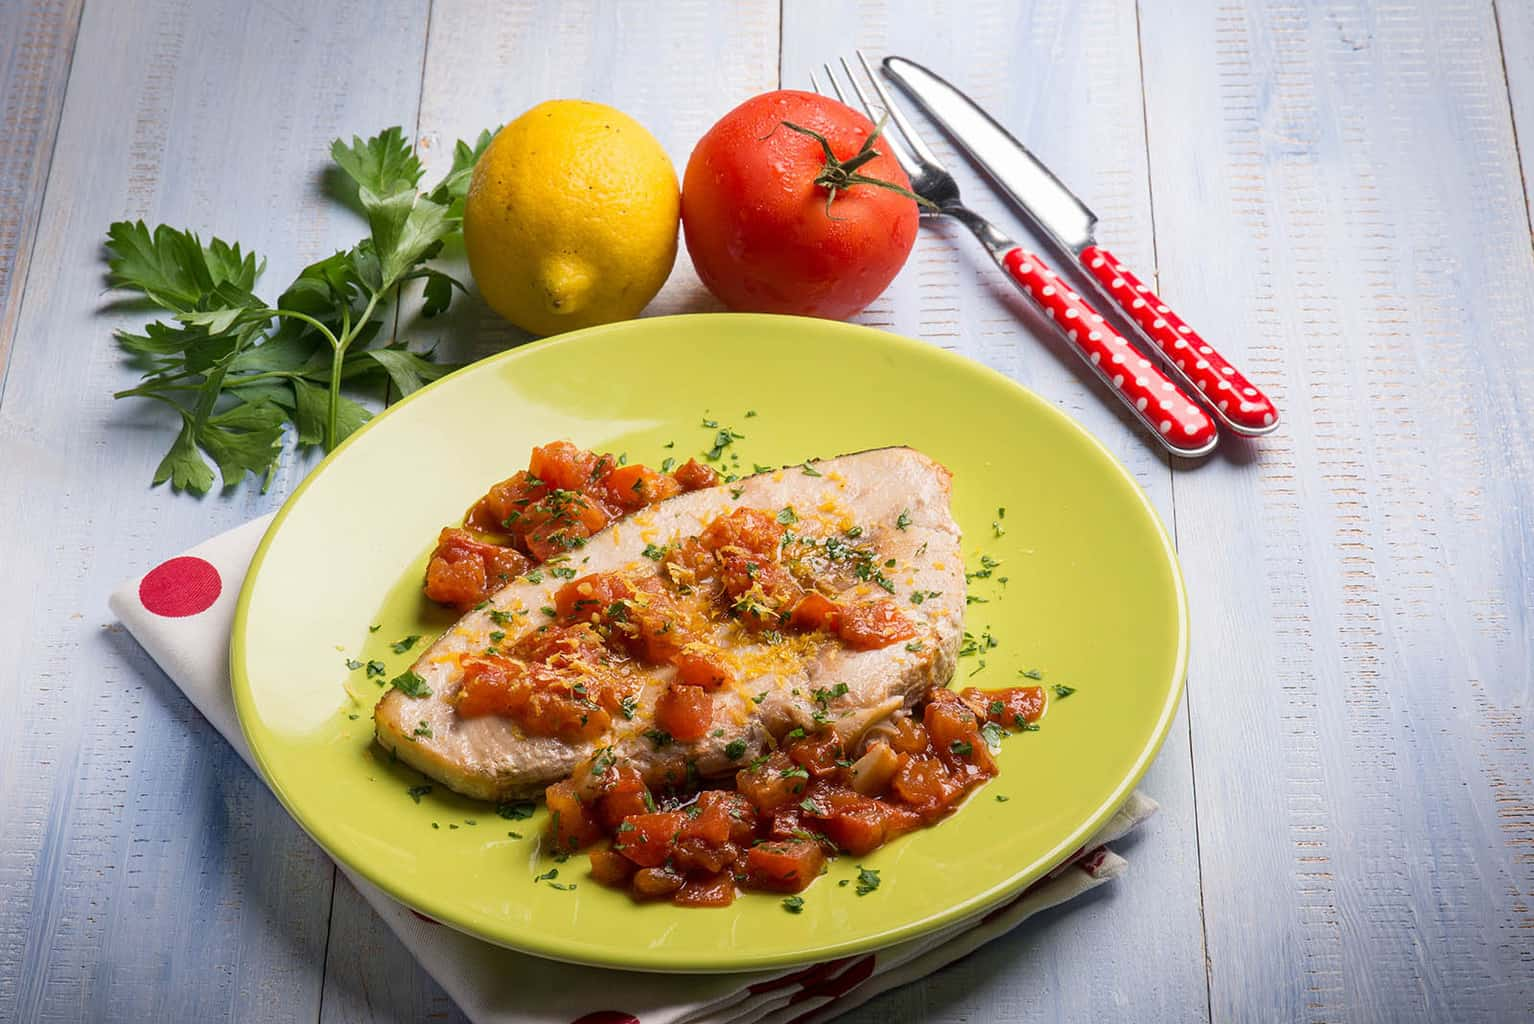 Swordfish with fresh tomatoes and grated lemon peel on a plate with a fork and knife next to it